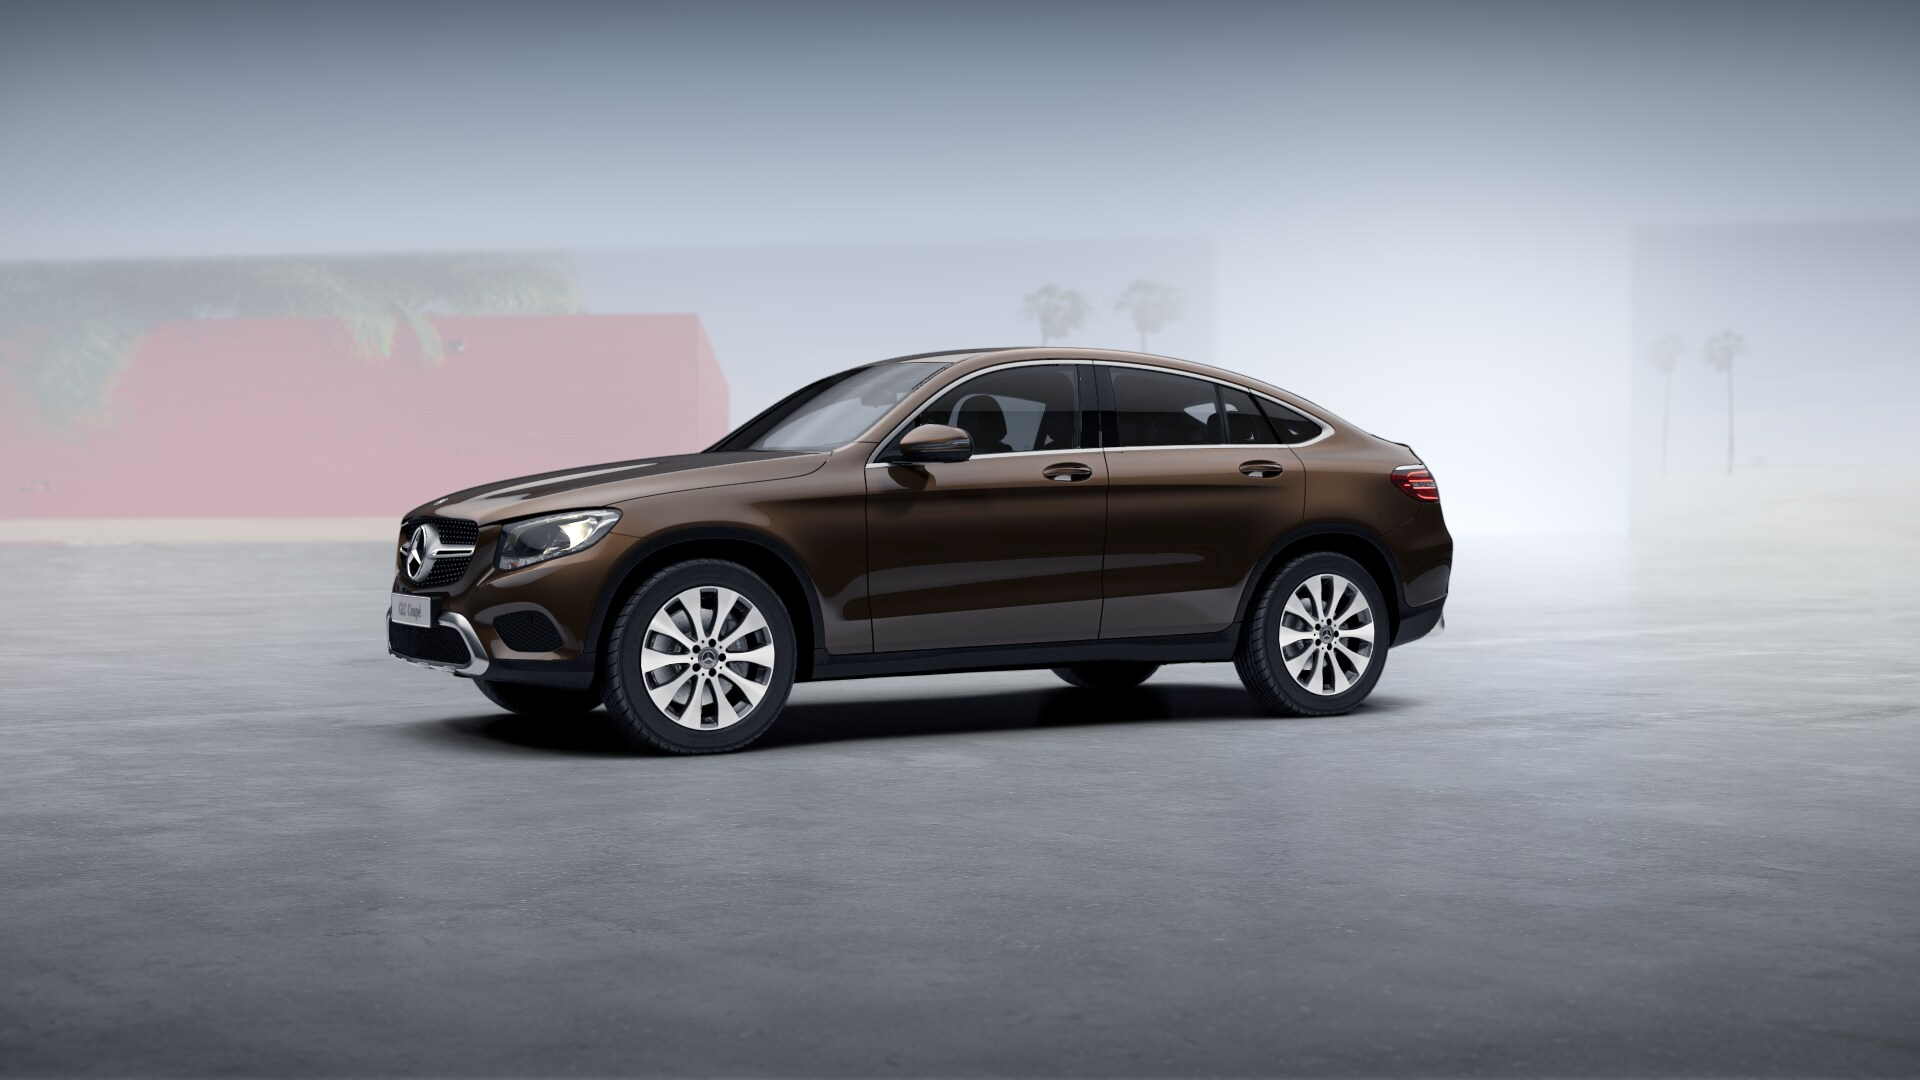 Mercedes GLC 300 Coupe 4Matic 2017 2018 (1)